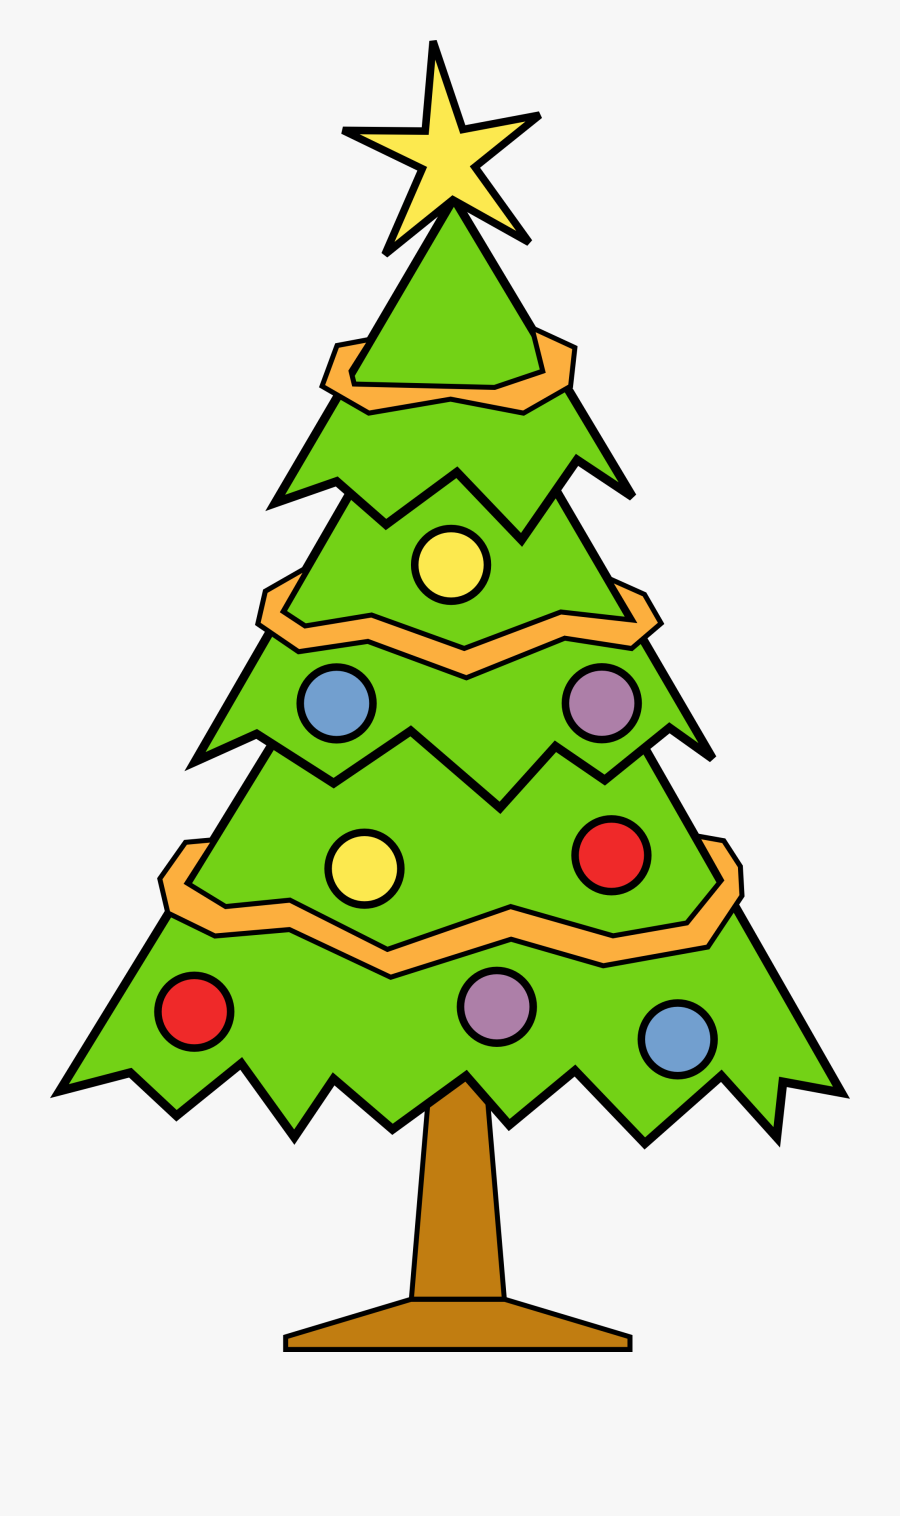 Christmas Tree Clip Art To Download - Christmas Tree ...